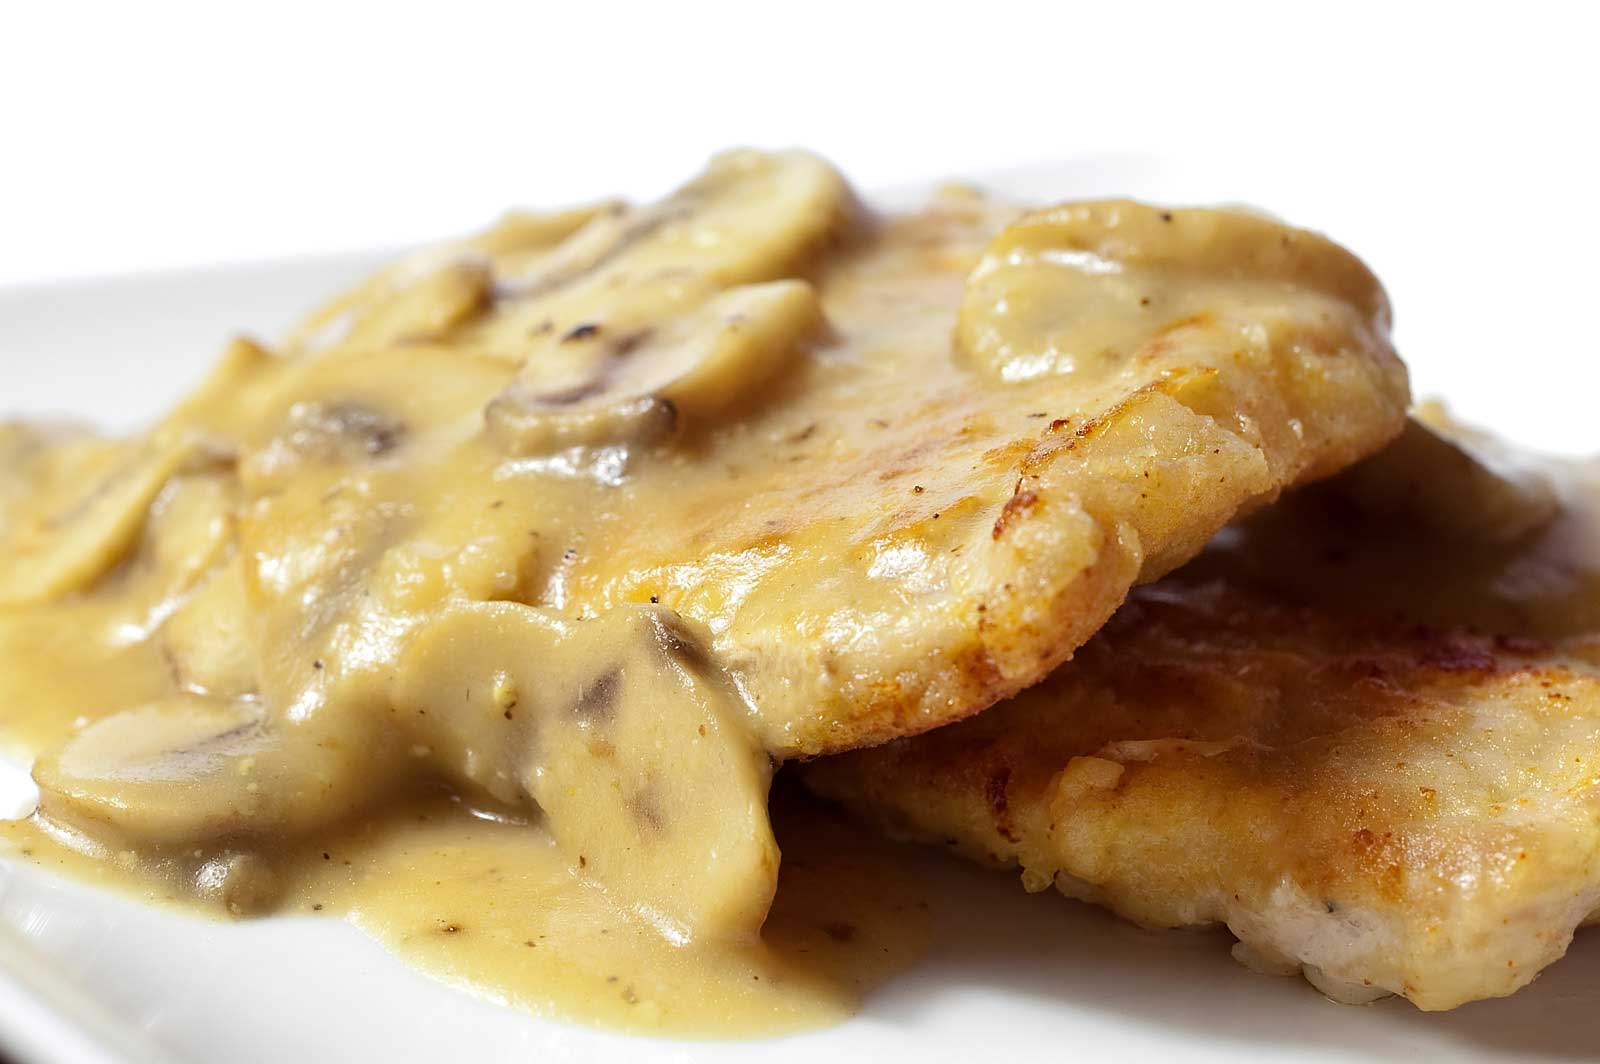 ... .com/food/large/pan-fried-pork-chops-with-mushroom-gravy.jpg